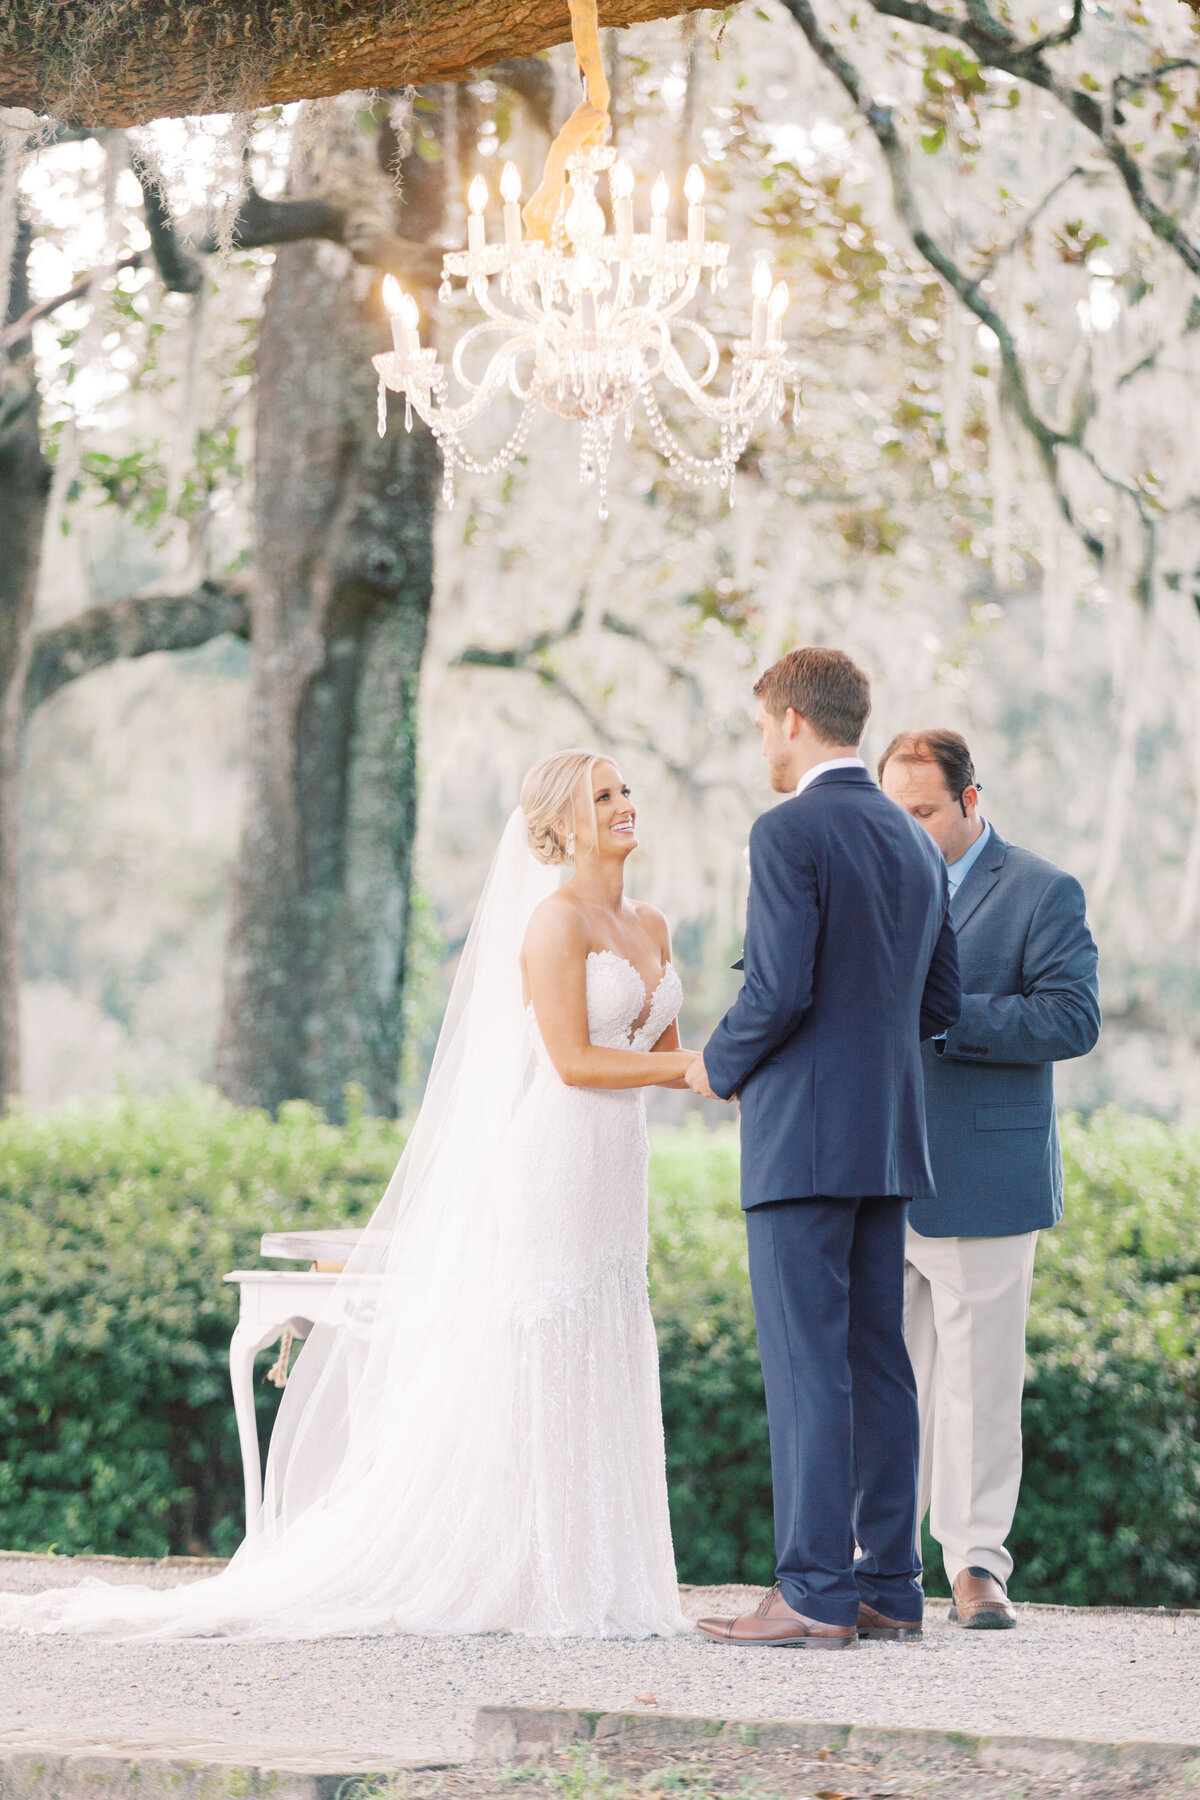 Melton_Wedding__Middleton_Place_Plantation_Charleston_South_Carolina_Jacksonville_Florida_Devon_Donnahoo_Photography__0640